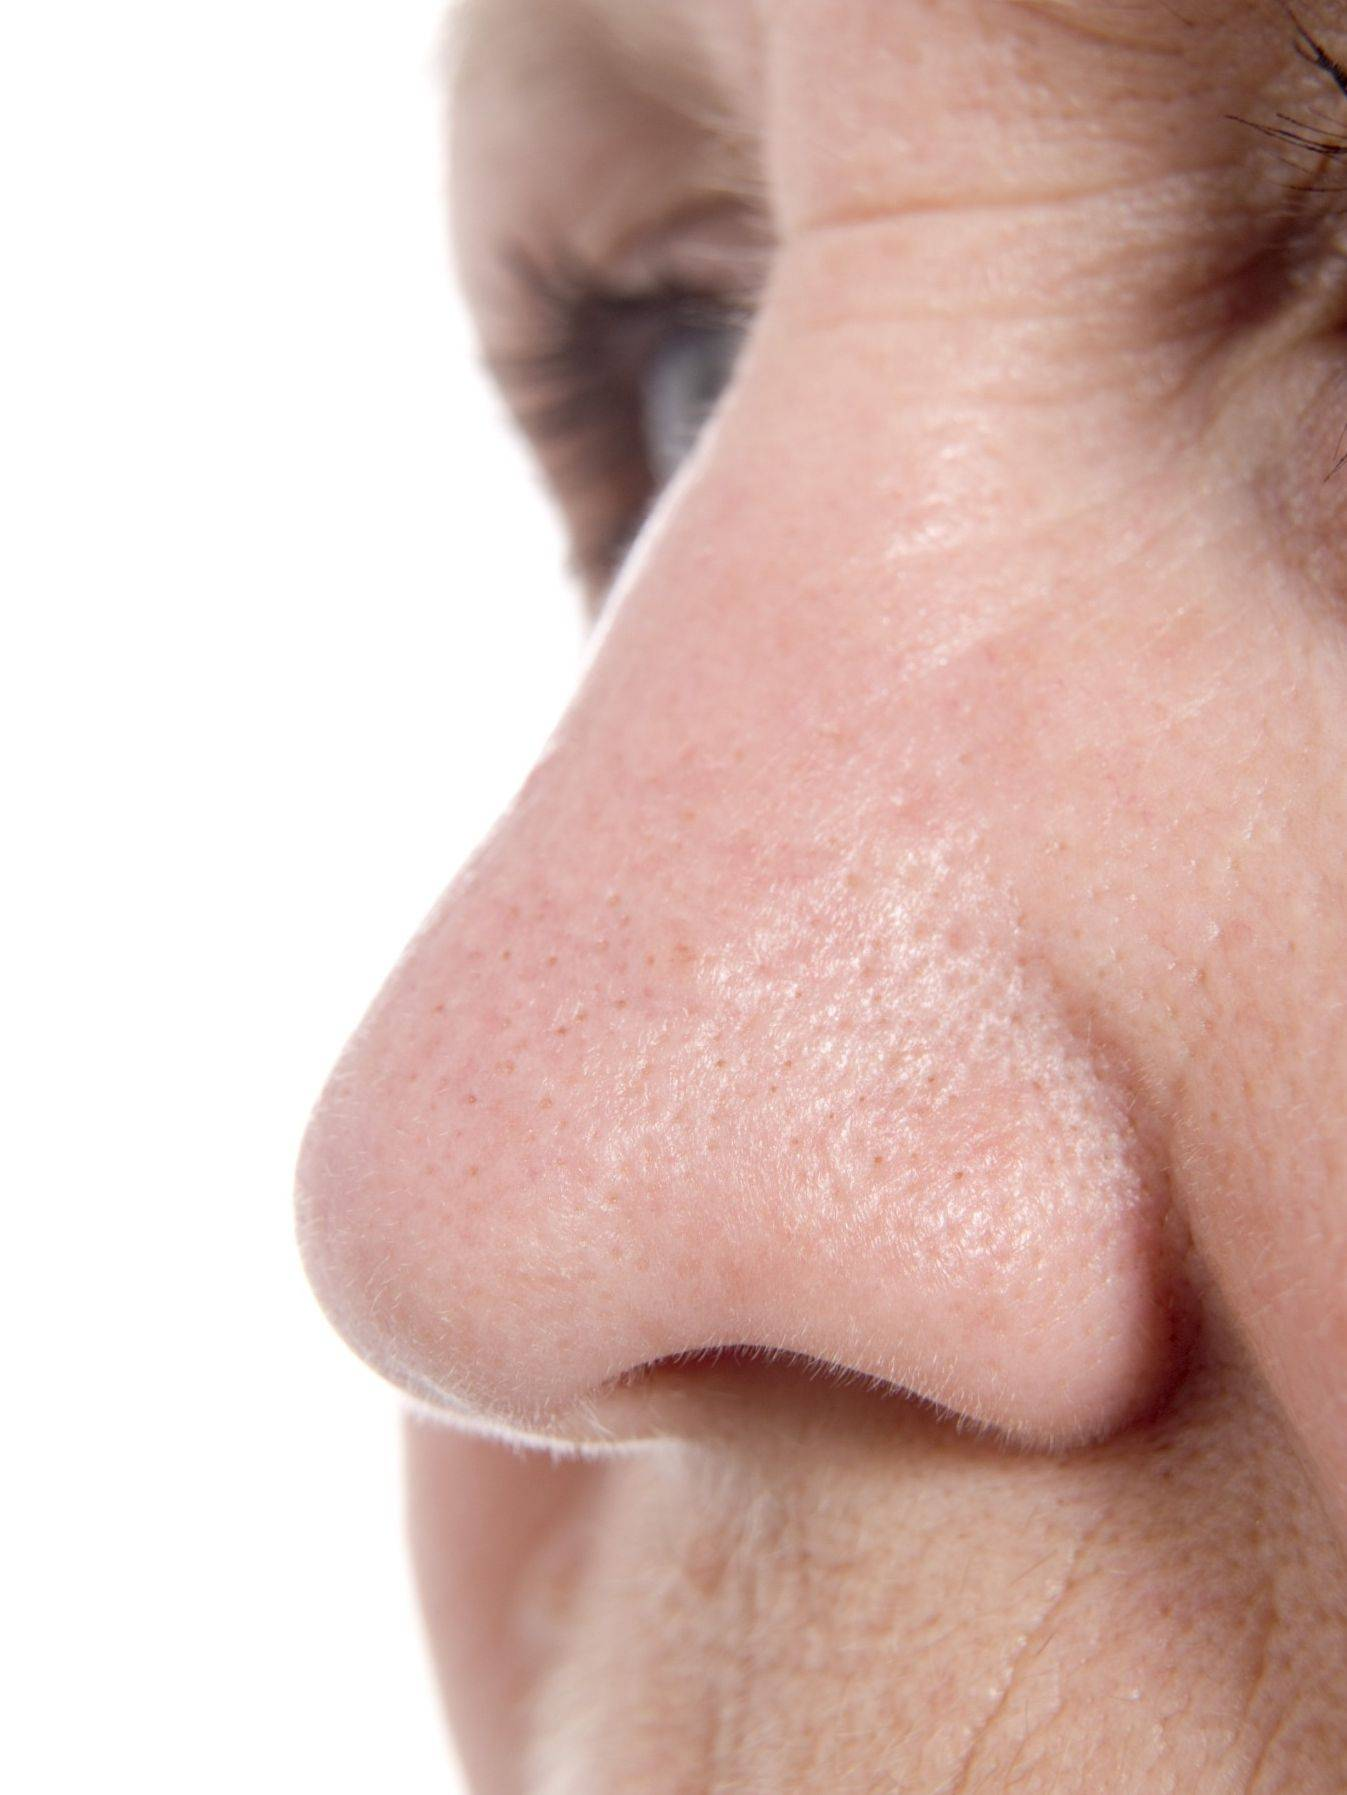 The average human nose can pick up 10,000 different odors.